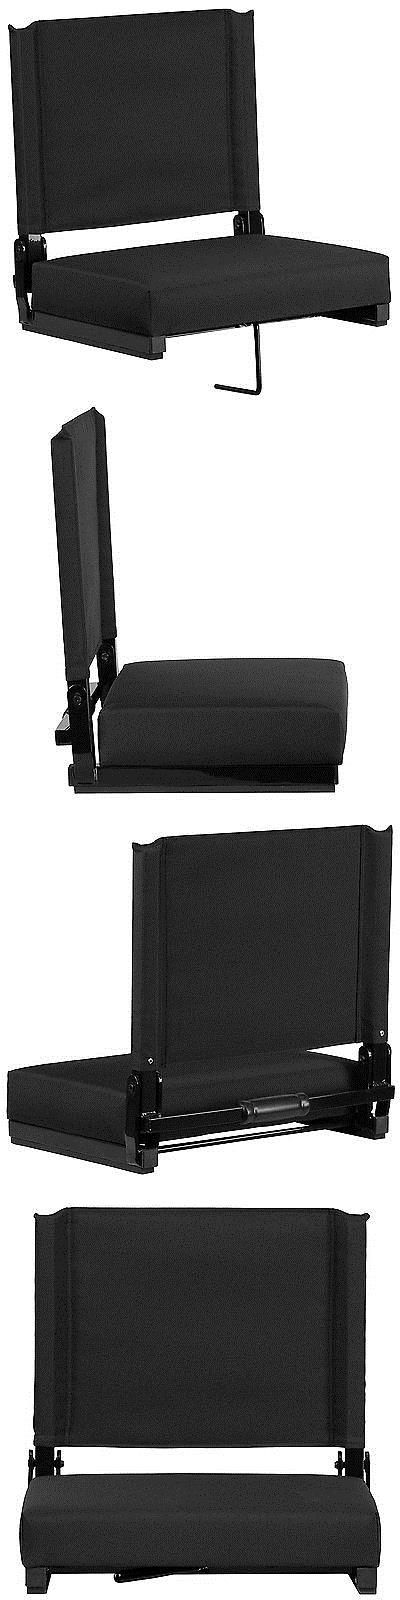 Other Outdoor Sports 159048: Bleacher Seats With Backs Black Stadium Chair Cushion Comfy Portable New Games -> BUY IT NOW ONLY: $55.07 on eBay!